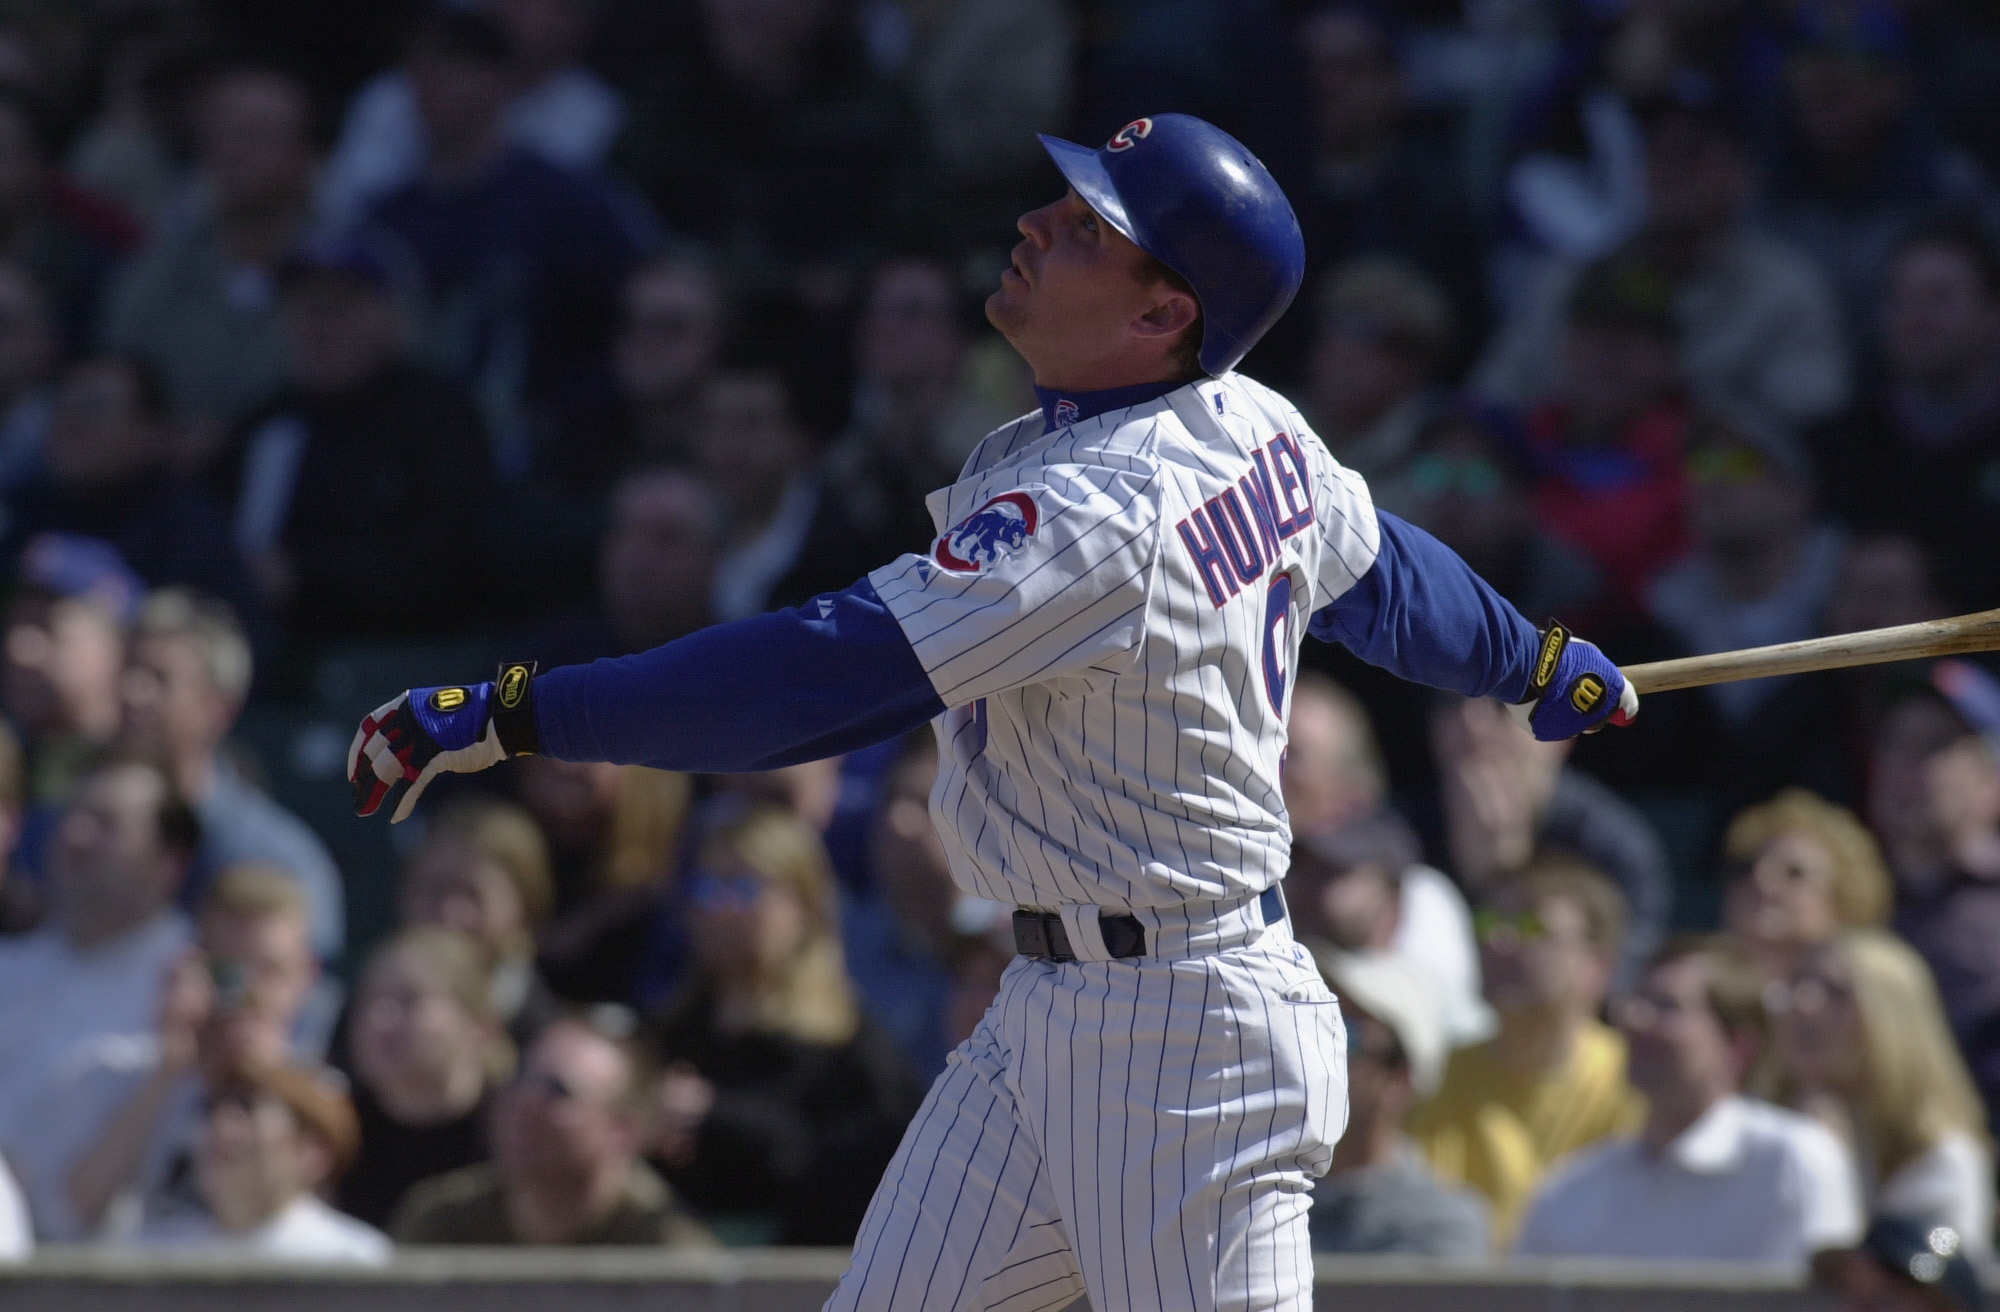 10 April 2002:  Todd Hundley #9 of the Chicago Cubs swings at a pitch during the game against the New York Mets at Wrigley Field in Chicago, Illinois. The Mets defeated the Cubs 3-2. DIGITAL IMAGE Mandatory Credit: Jonathan Daniel/Getty Images